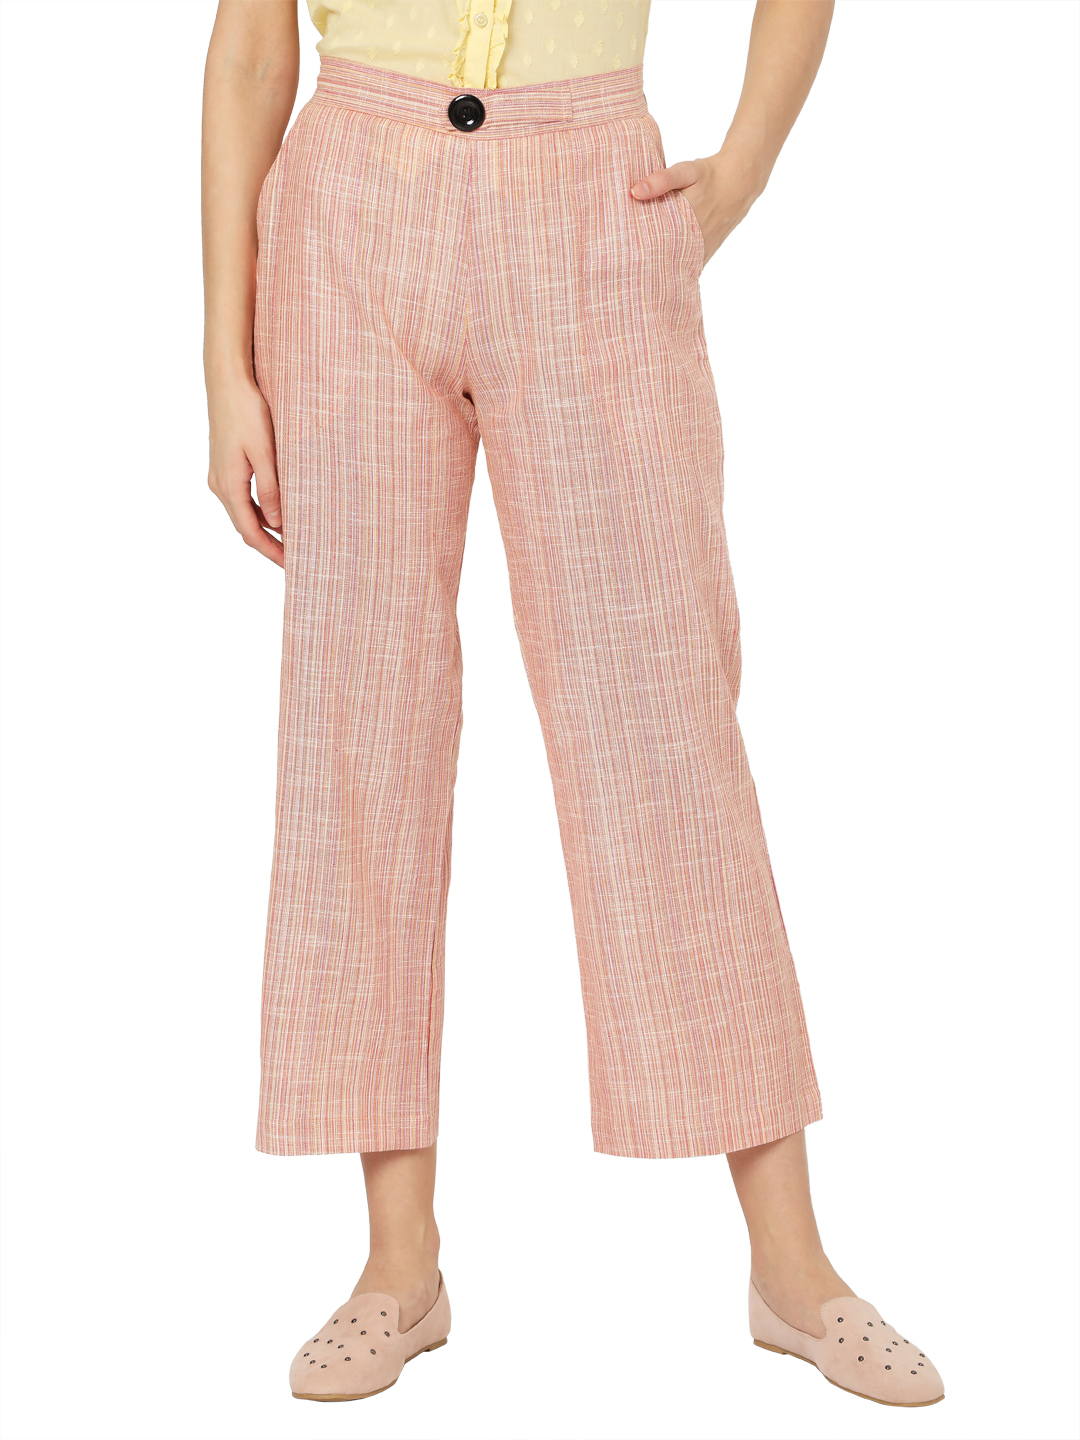 Smarty Pants | Smarty pants women's pure cotton pastel pink ankle length flared trouser